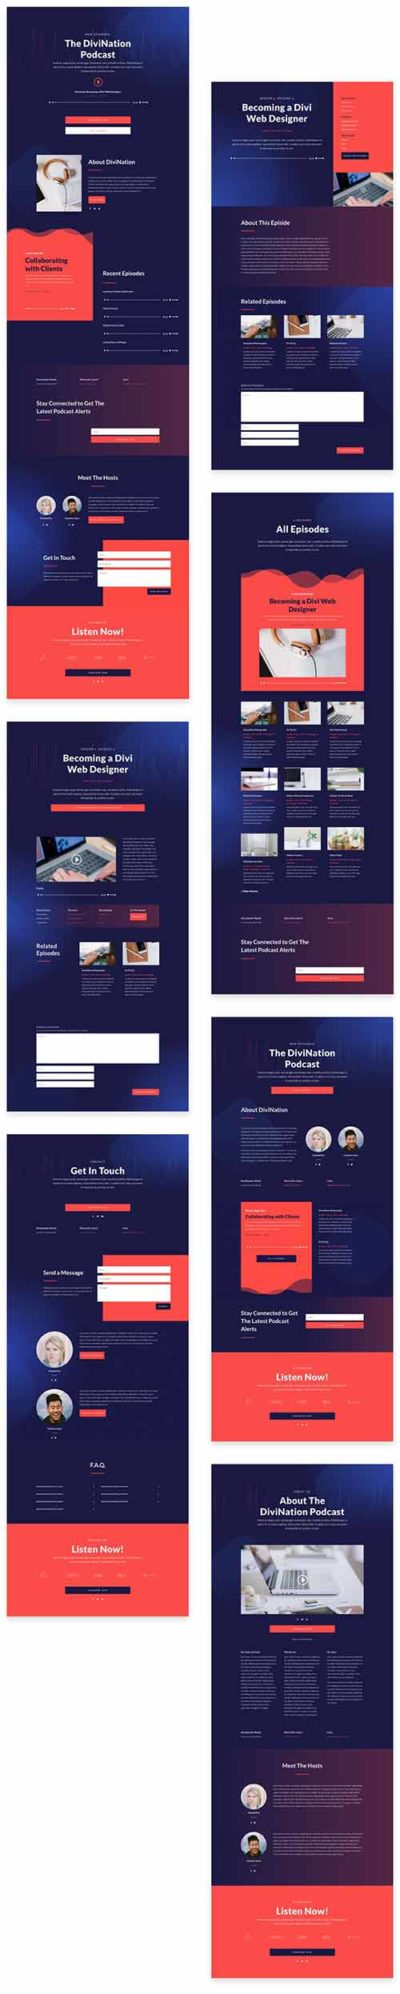 divi podcast website layout